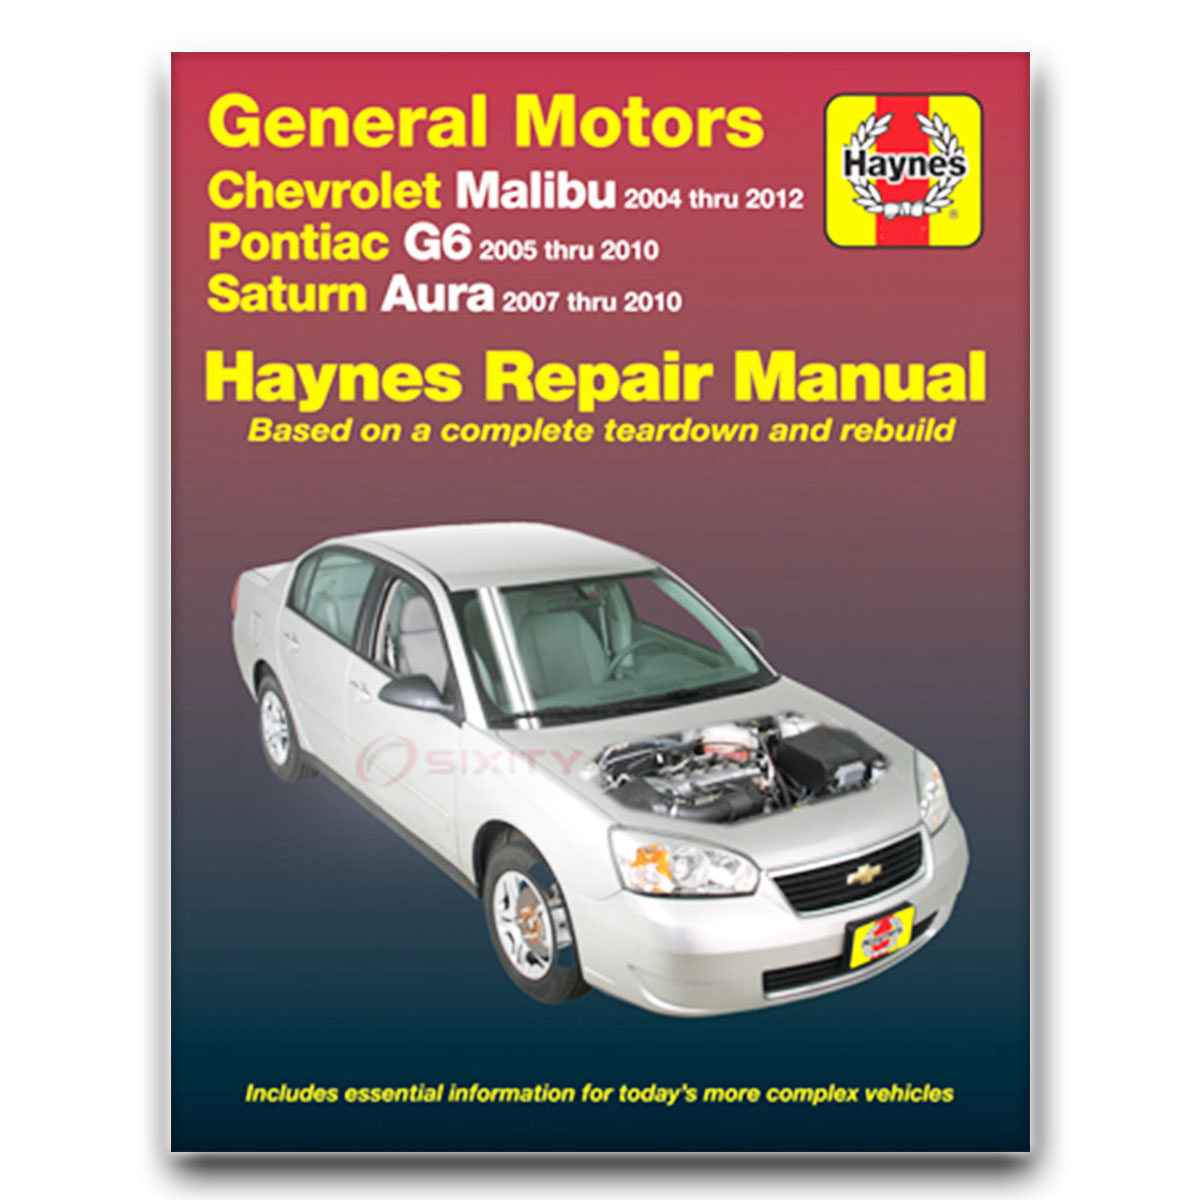 chevy malibu haynes repair manual maxx lt ss ls base ltz classic rh ebay com haynes repair manual free haynes repair manual free